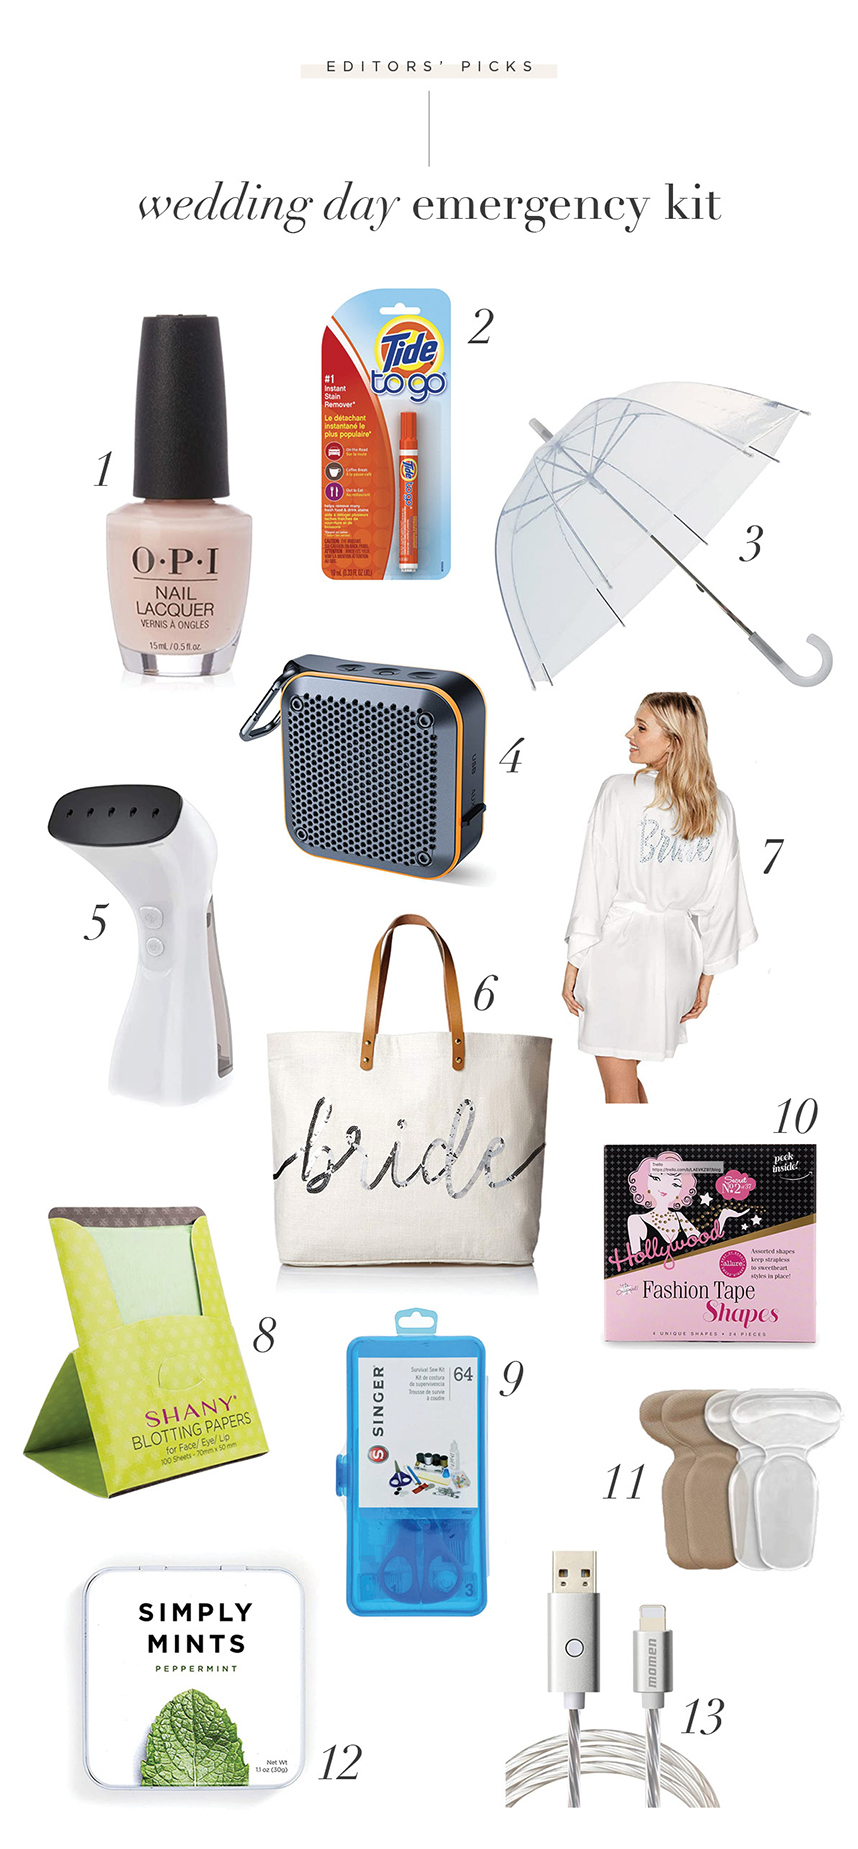 What to Pack in your Emergency Wedding Day Kit